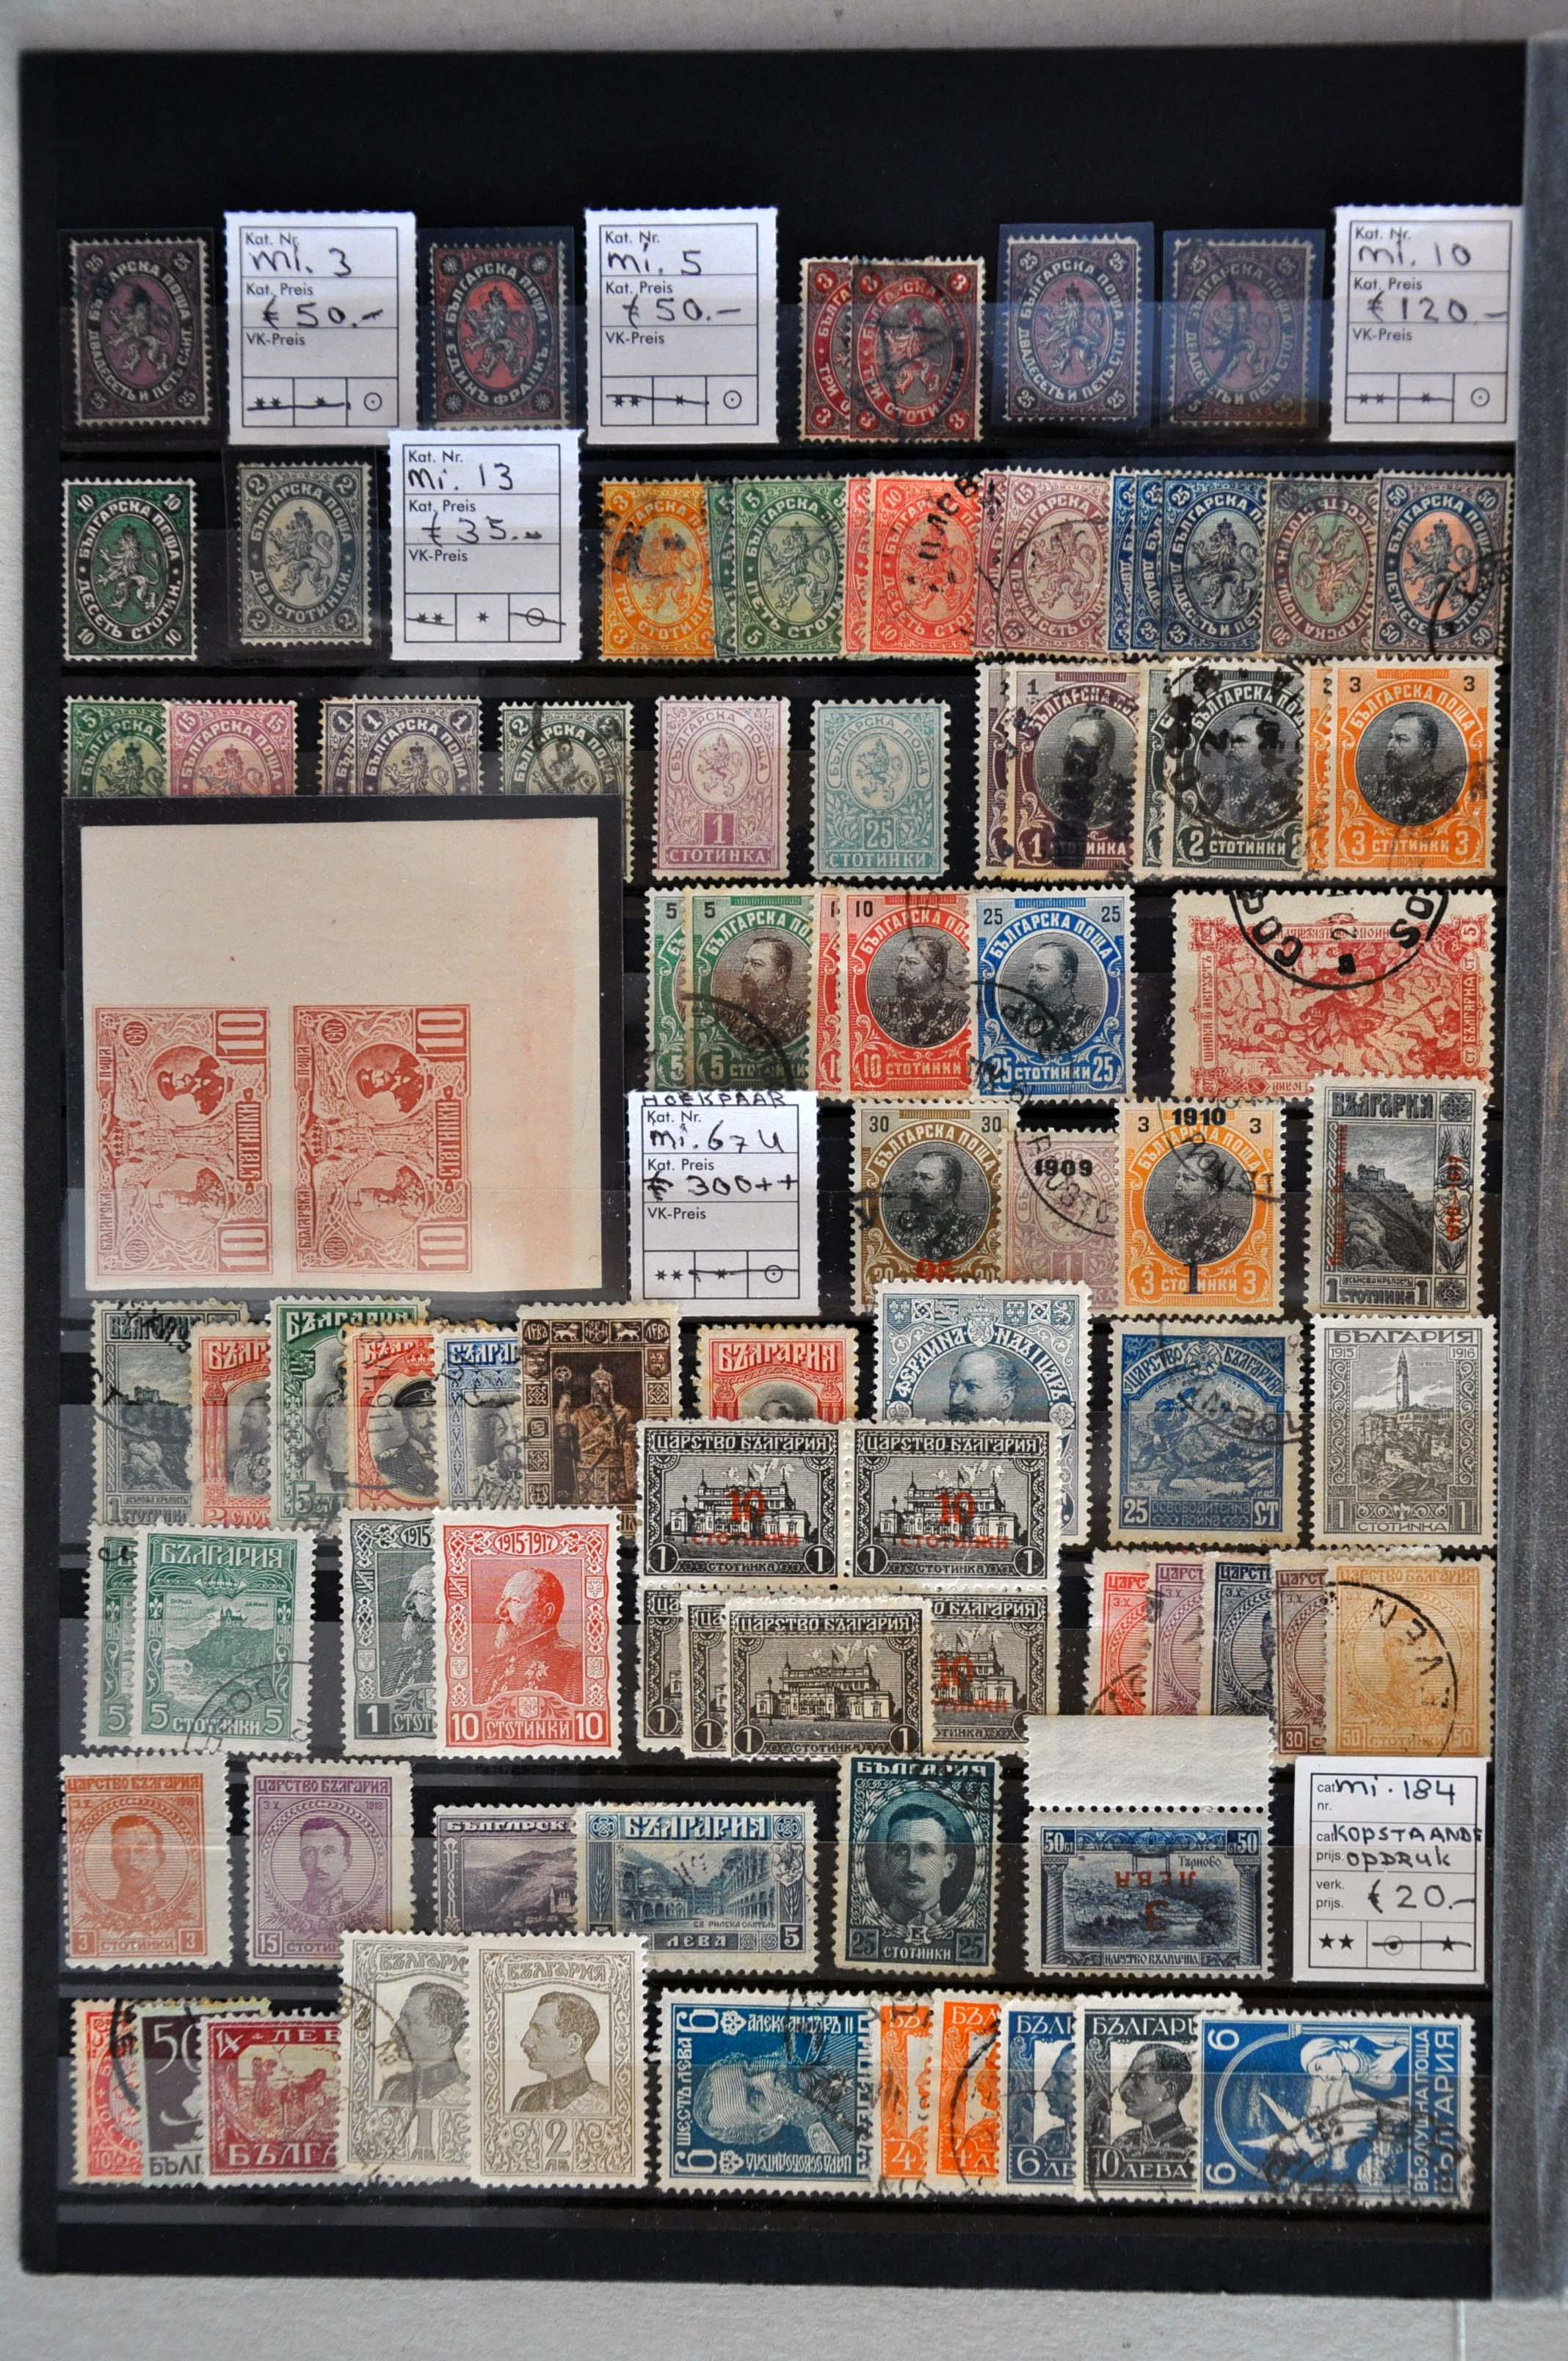 Lot 595 - European Countries Bulgaria -  Corinphila Veilingen Auction 245-246 Day 2 - Foreign countries - Collections and lots, Foreign countries - Boxes and literature